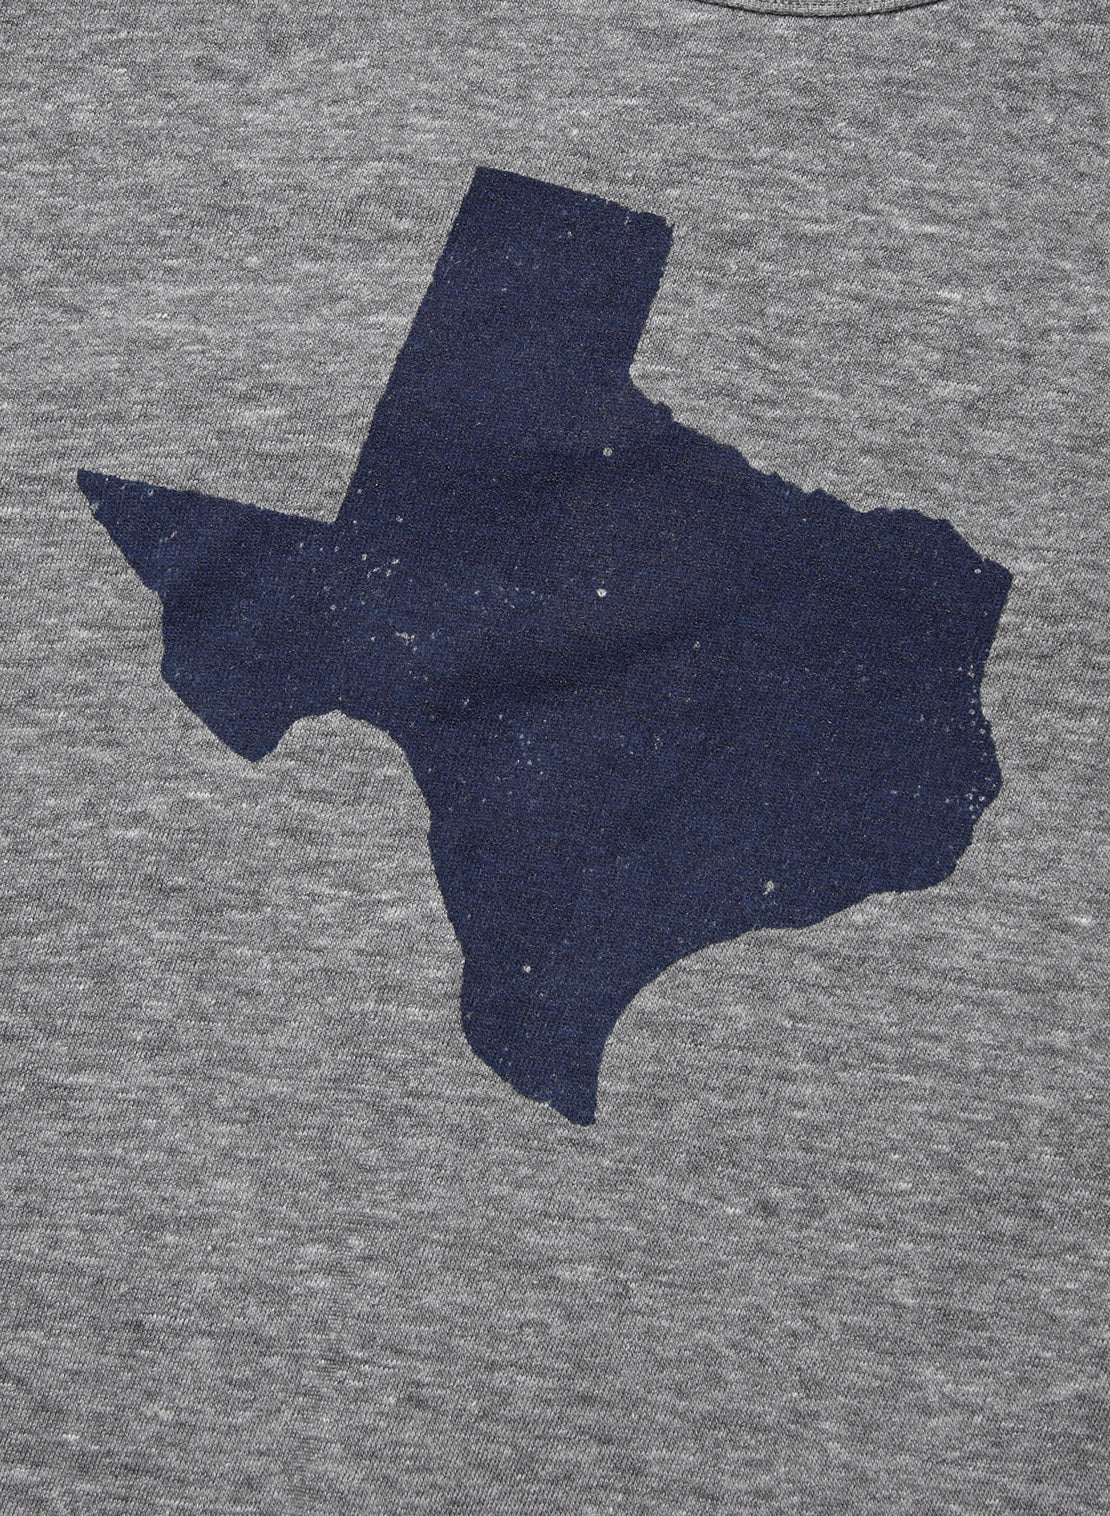 Graphic Tee - Texas - Alchemy Design - STAG Provisions - Tops - Graphic Tee